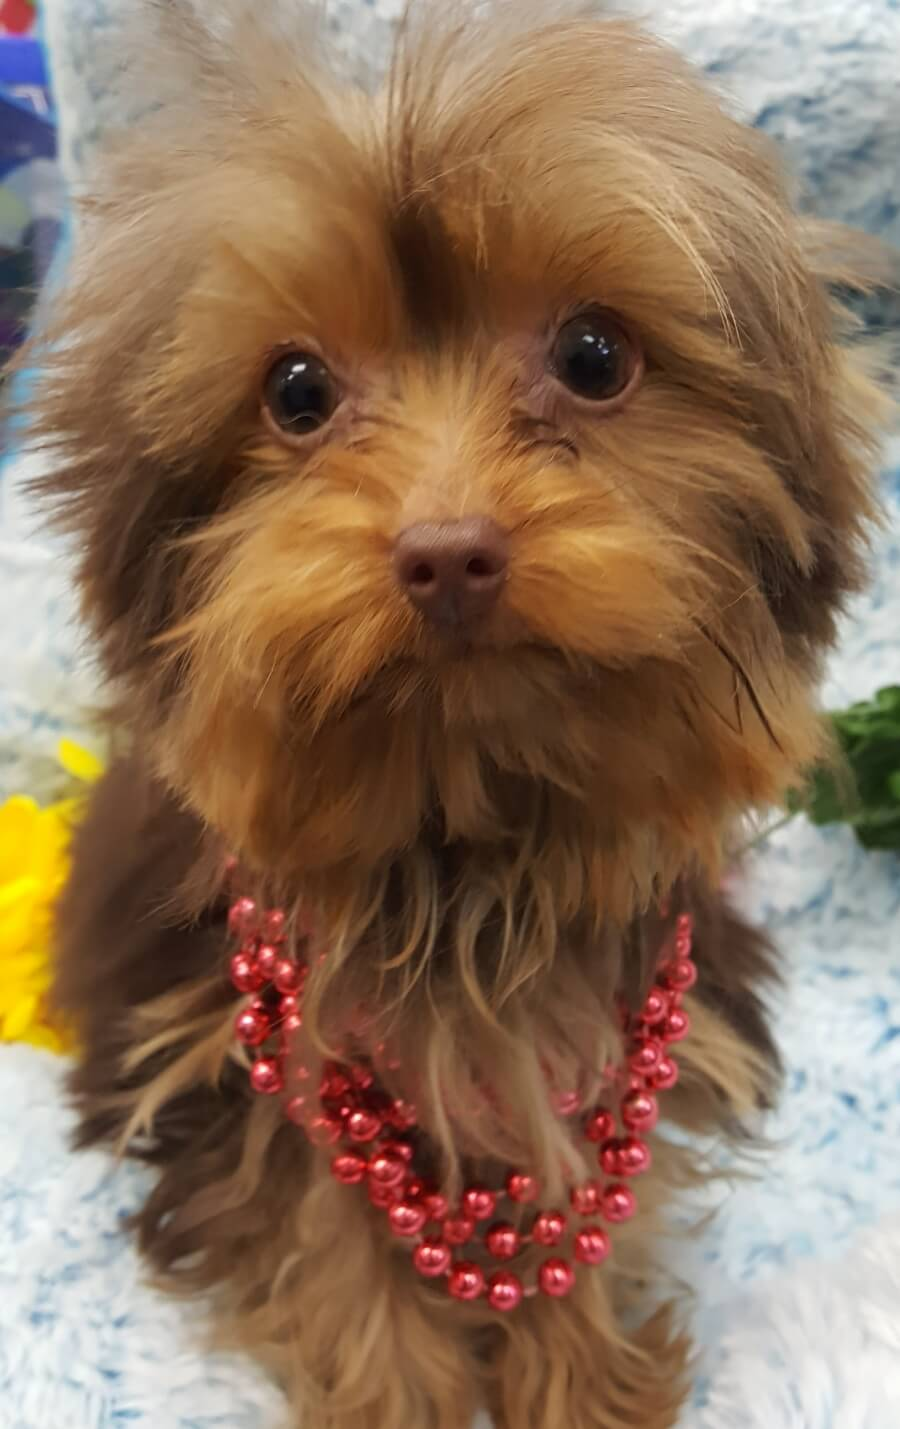 <small><del>Teacup Yorkshire Terrier</del></small><br />Happy Teacup Yorkshire Terrier